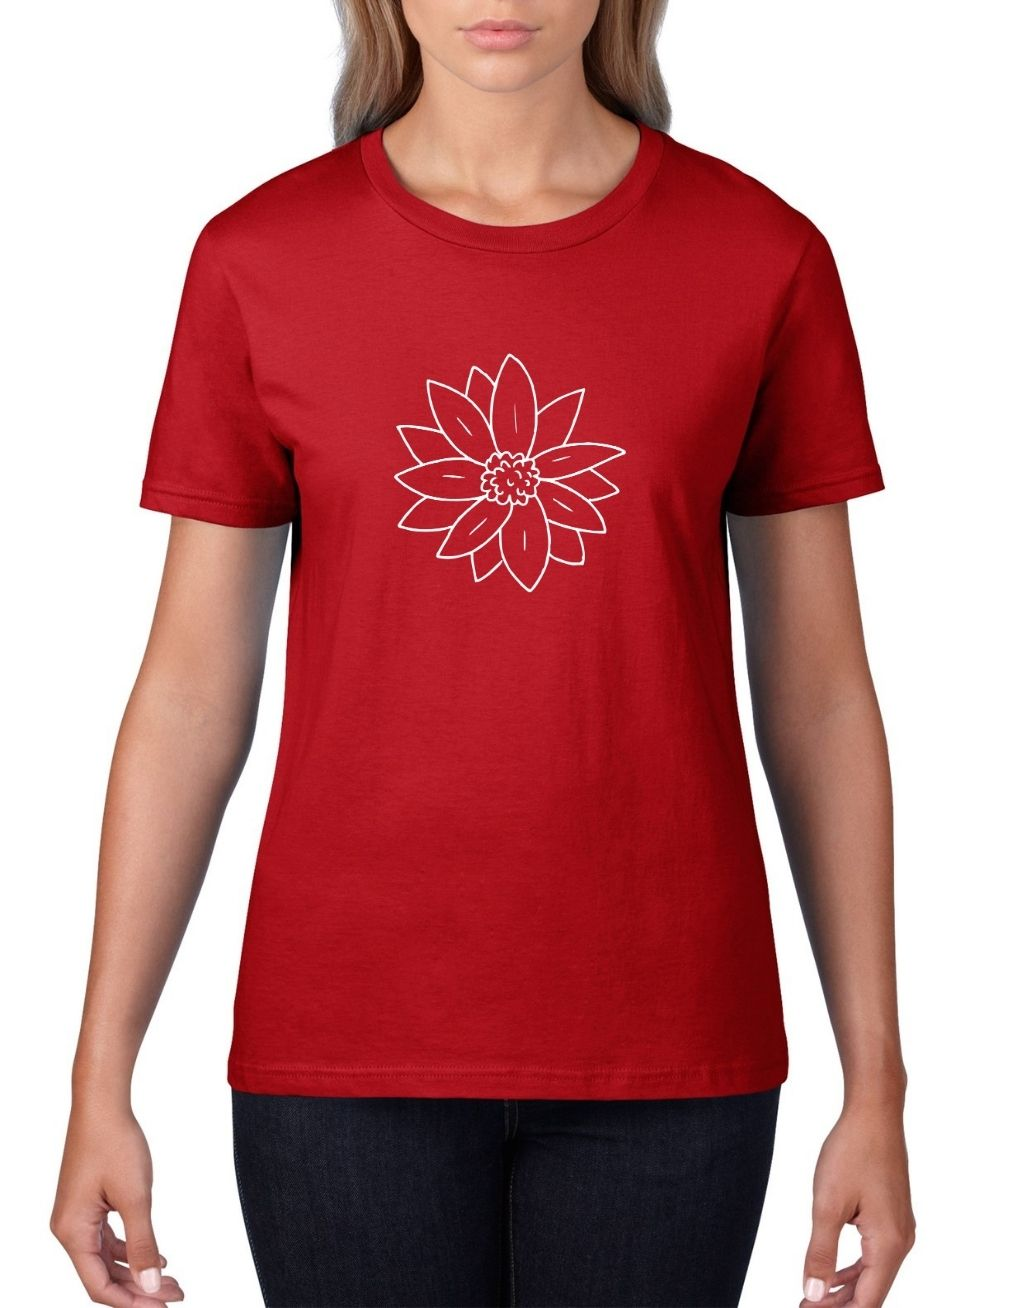 Summer Flower - Women's Fit T-Shirt